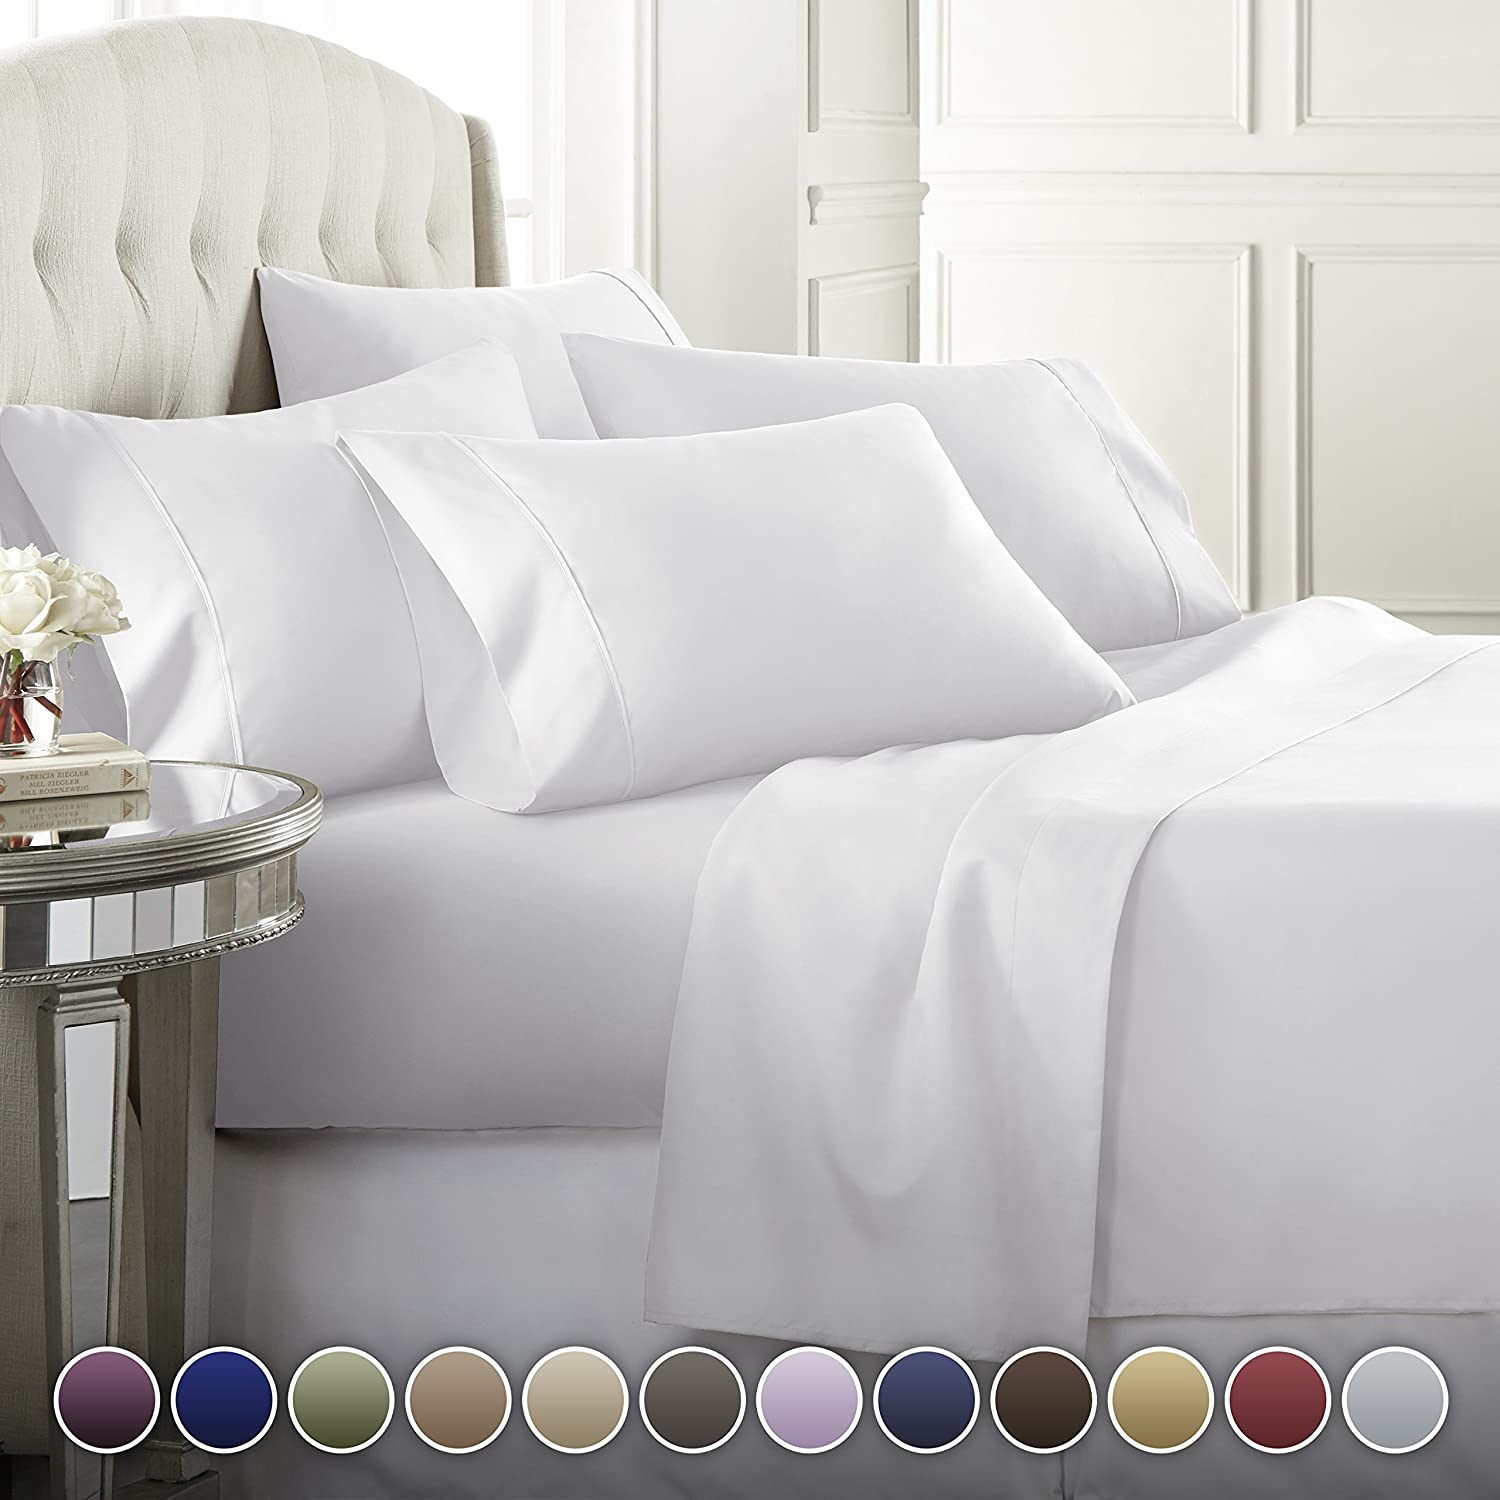 Hotel textile Luxury 1800 count deep pocket 4 piece bed sheet <strong>set</strong>